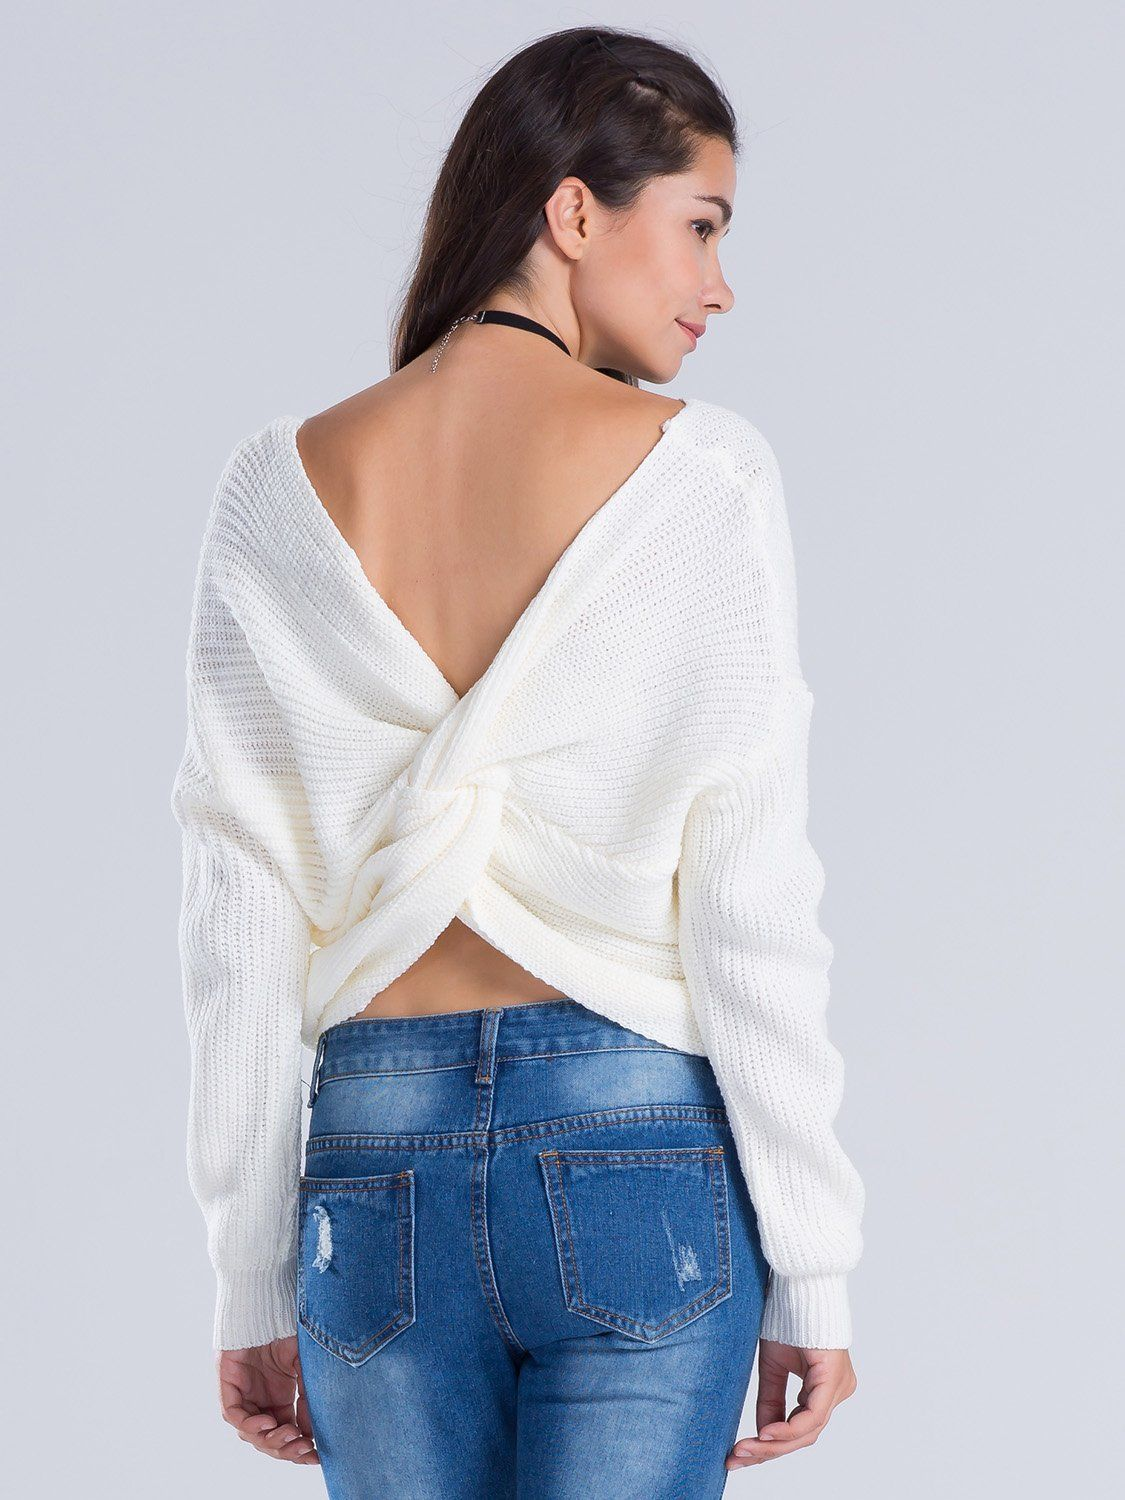 98c992df09a4ea V-neck Knot Twisted Back Long Sleeve Sweater